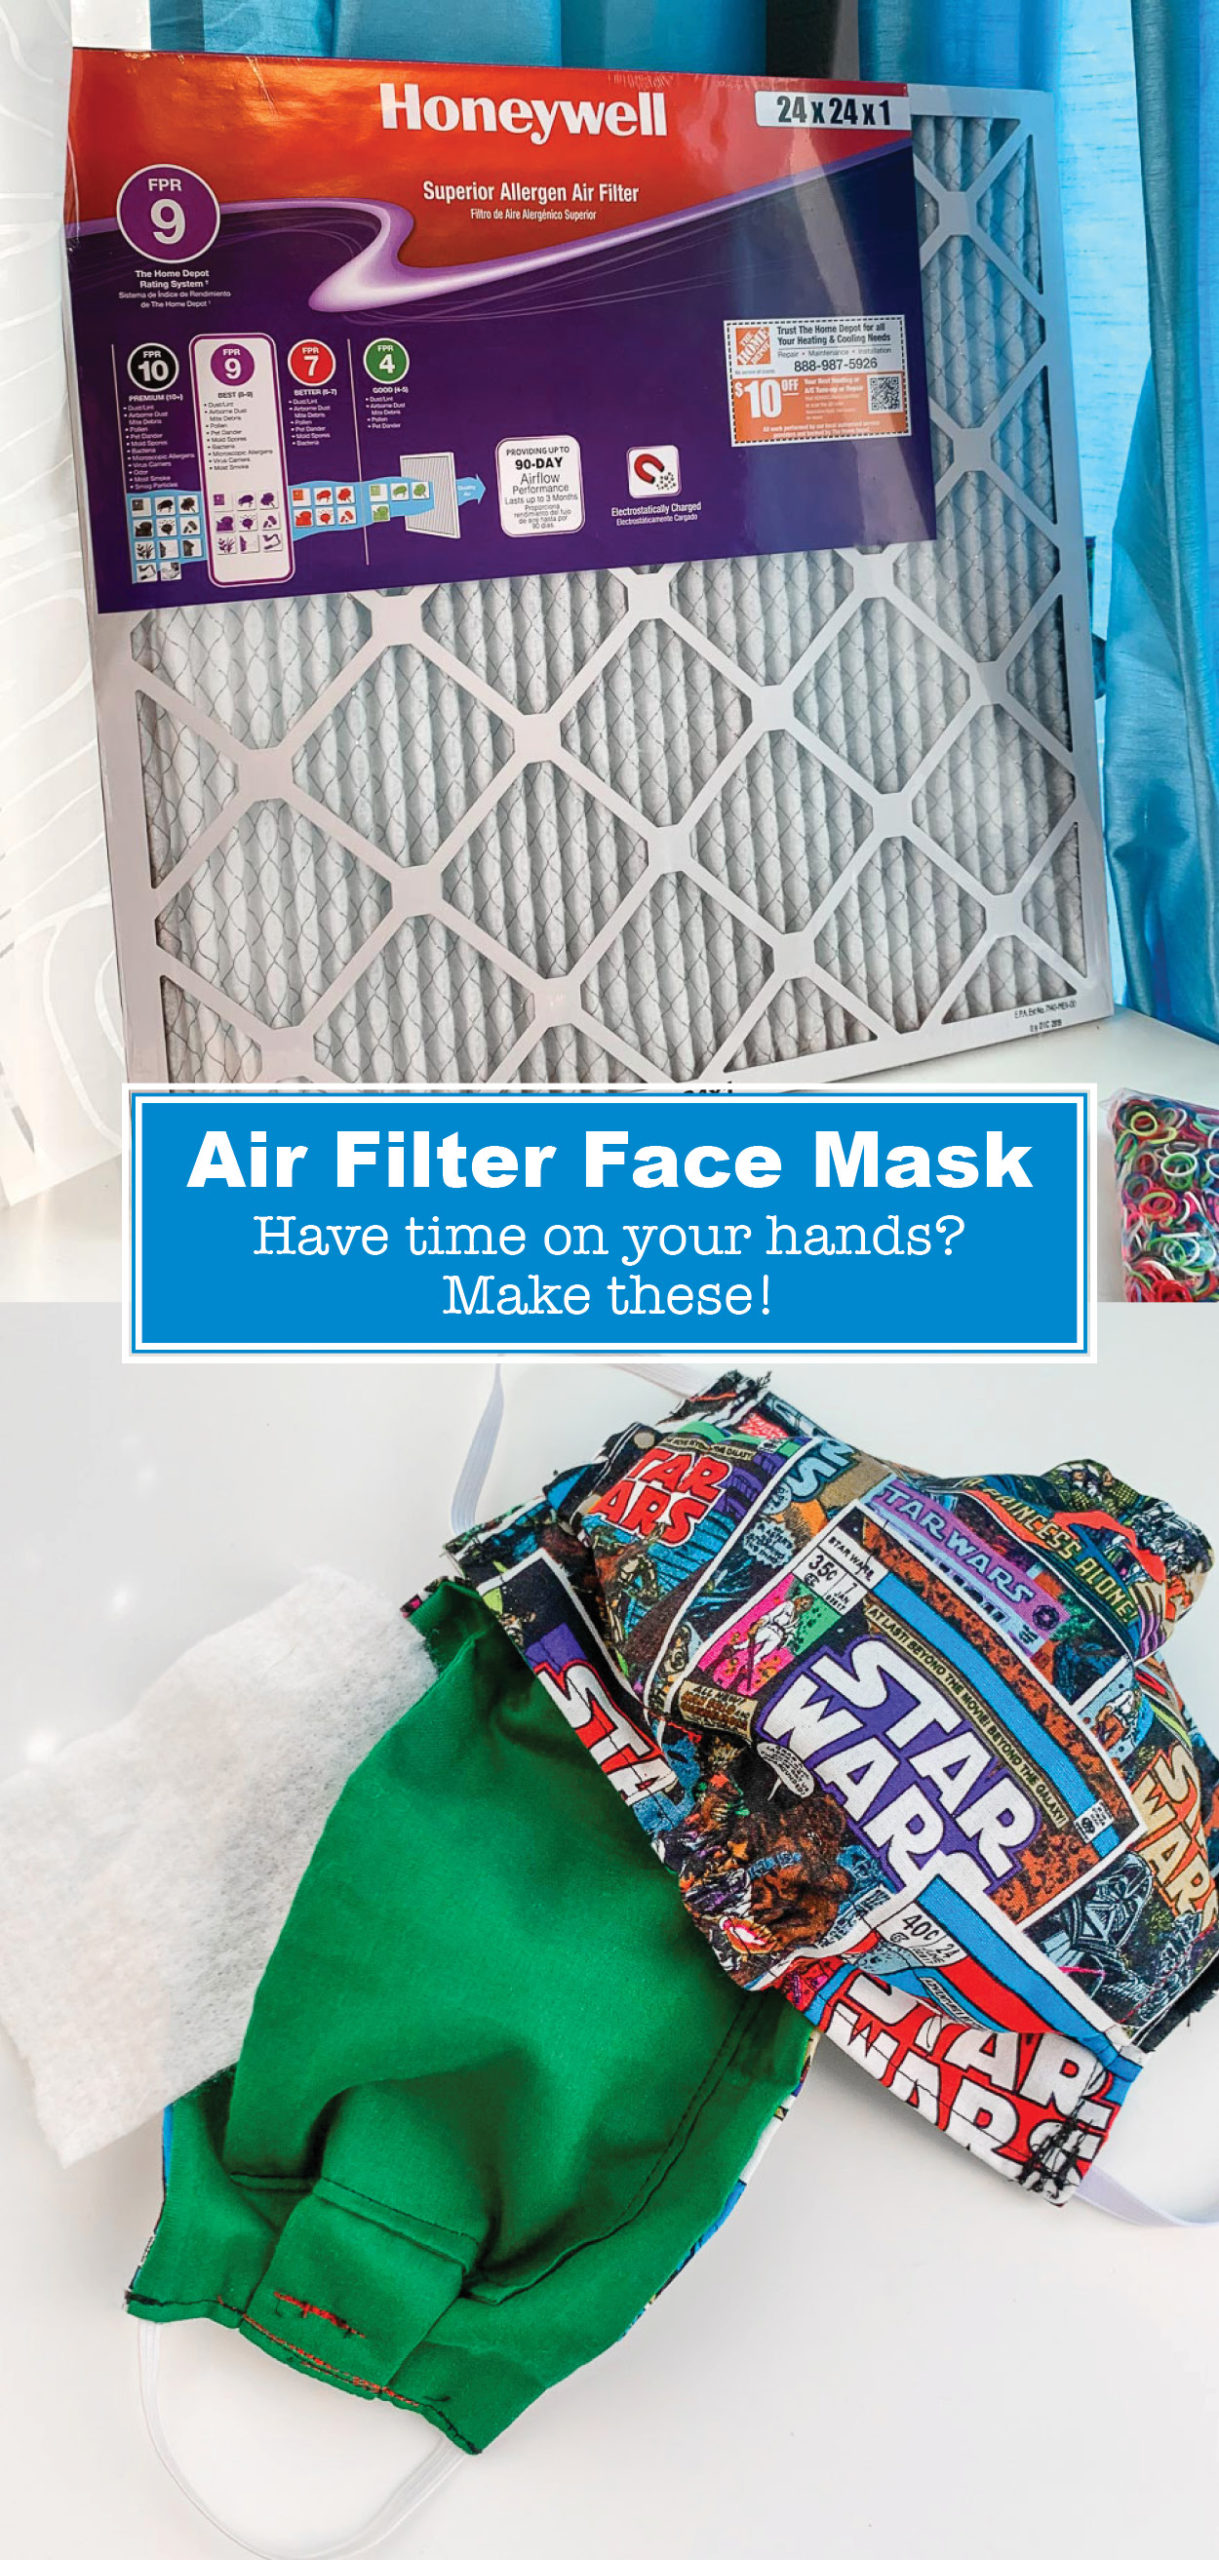 Did you know you can use a common household air filter to create a face mask? Here's how to sew a DIY Face Mask with a Filter if needed!